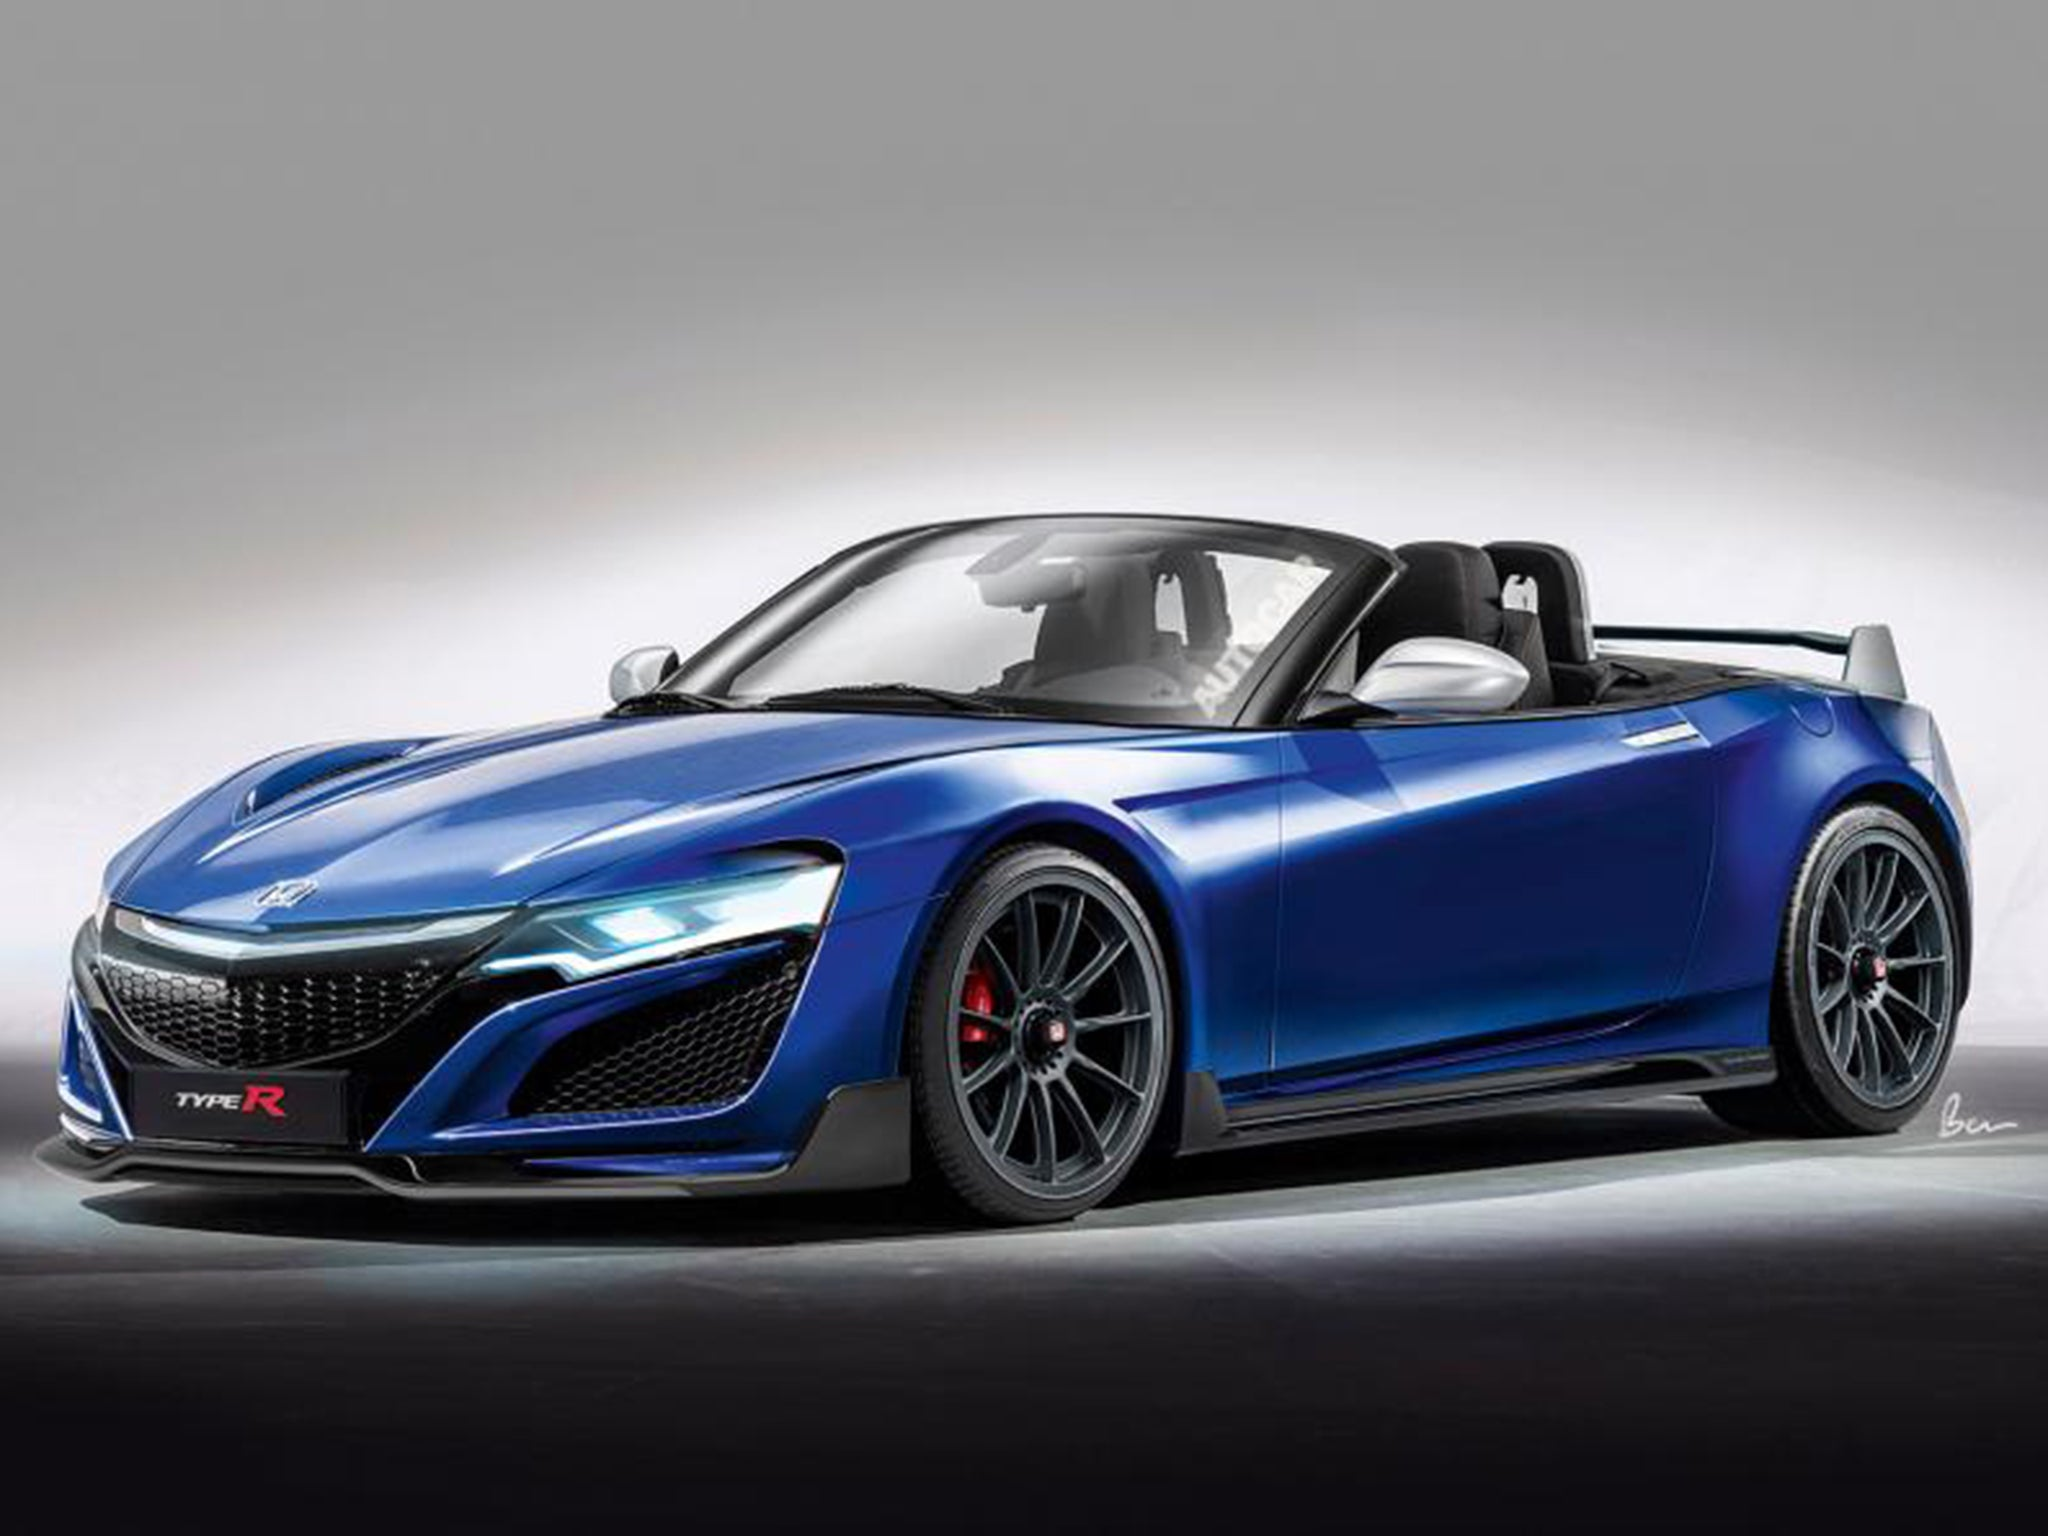 honda re joins sports car market with new s2000 the independent. Black Bedroom Furniture Sets. Home Design Ideas